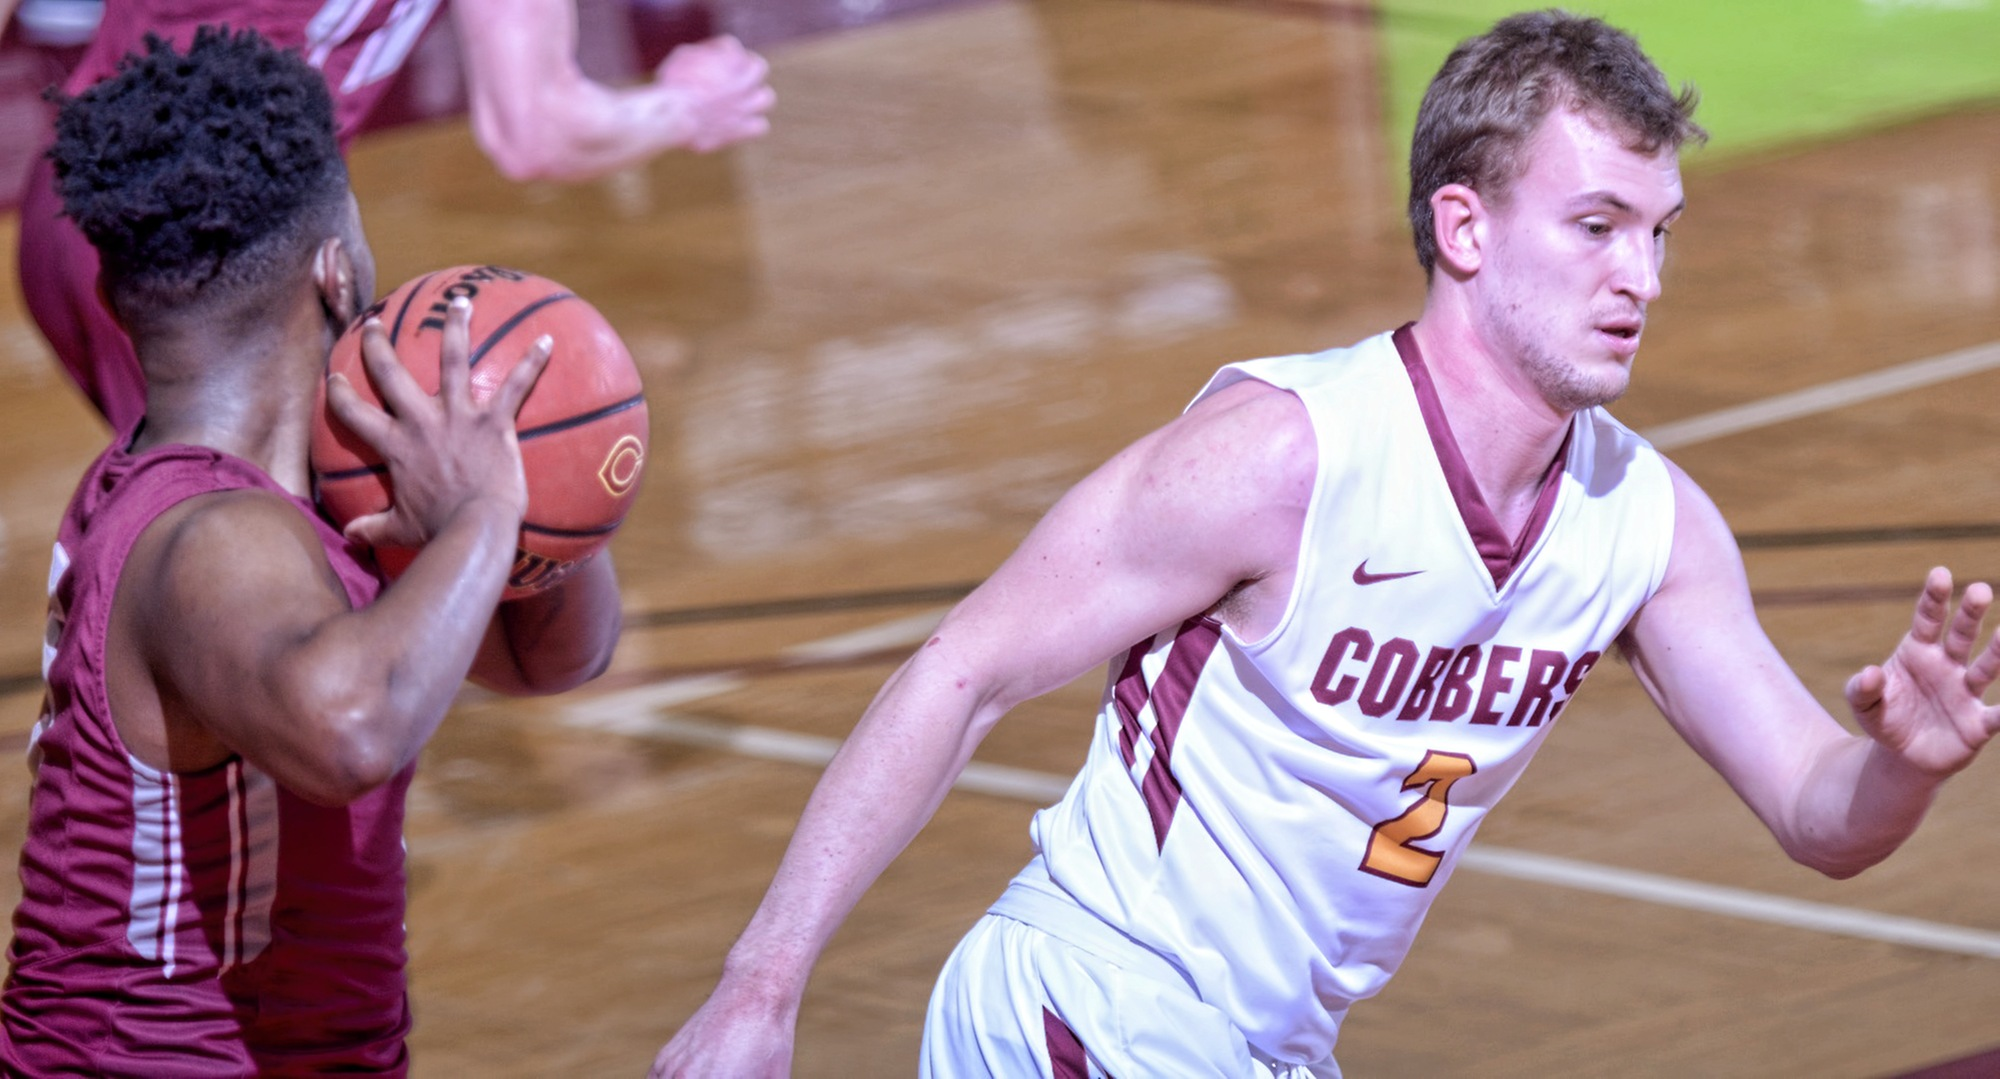 Senior Austin Rund tied his season high point total in the Cobbers' game at Hamline.